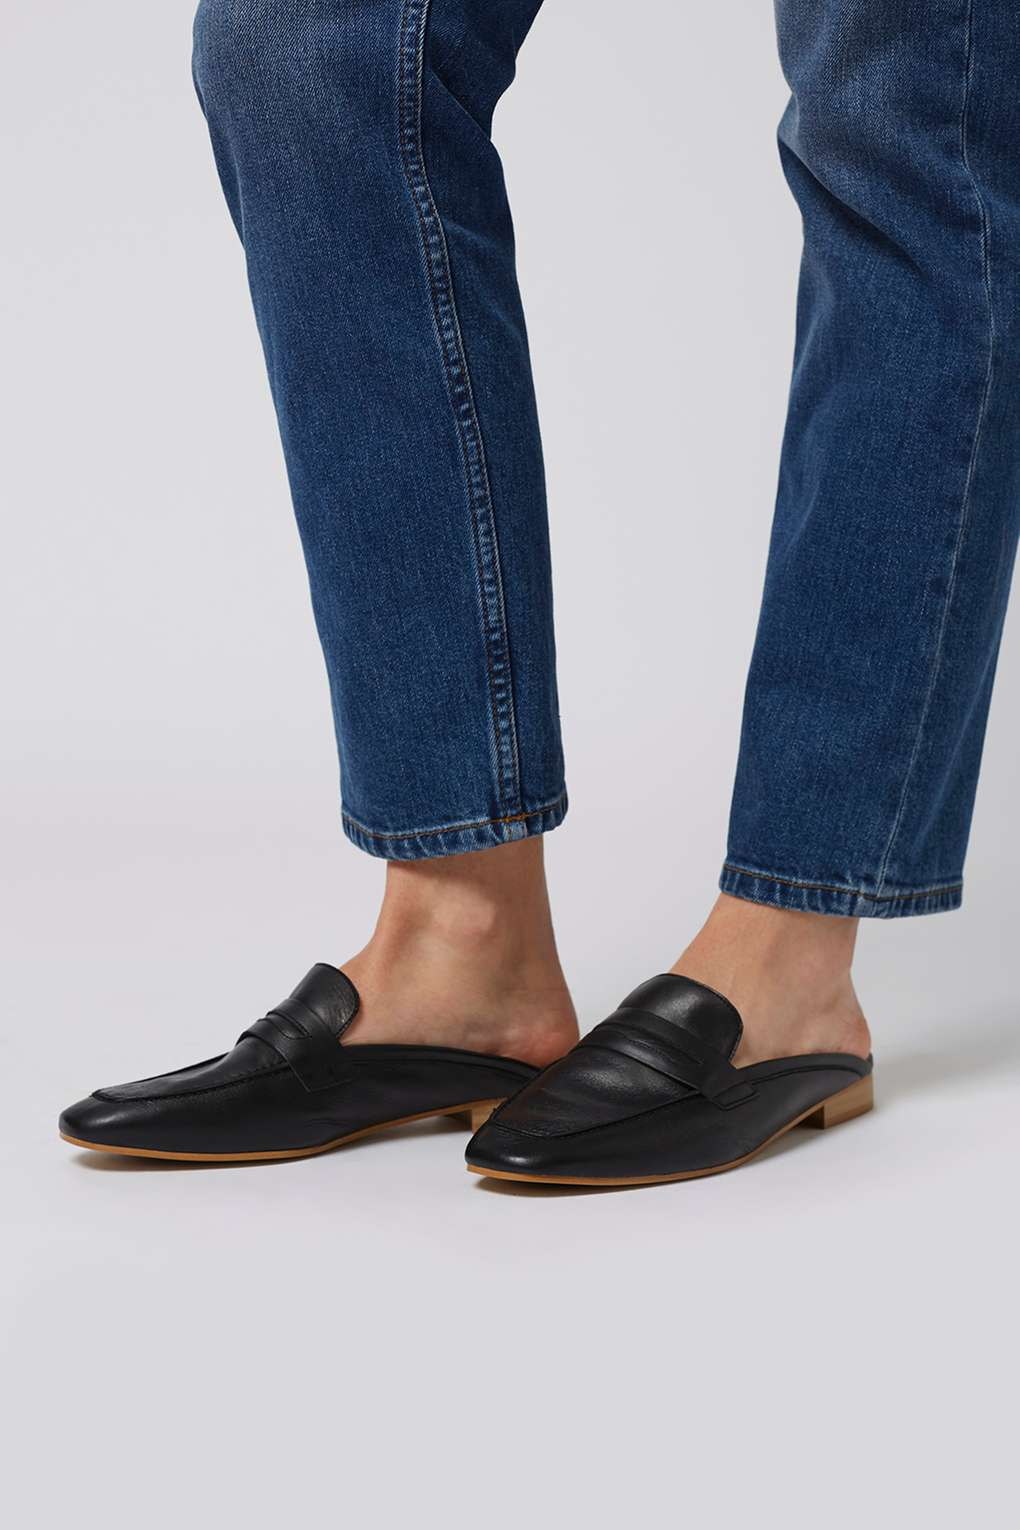 Babouche shoes v. flat mules | Style